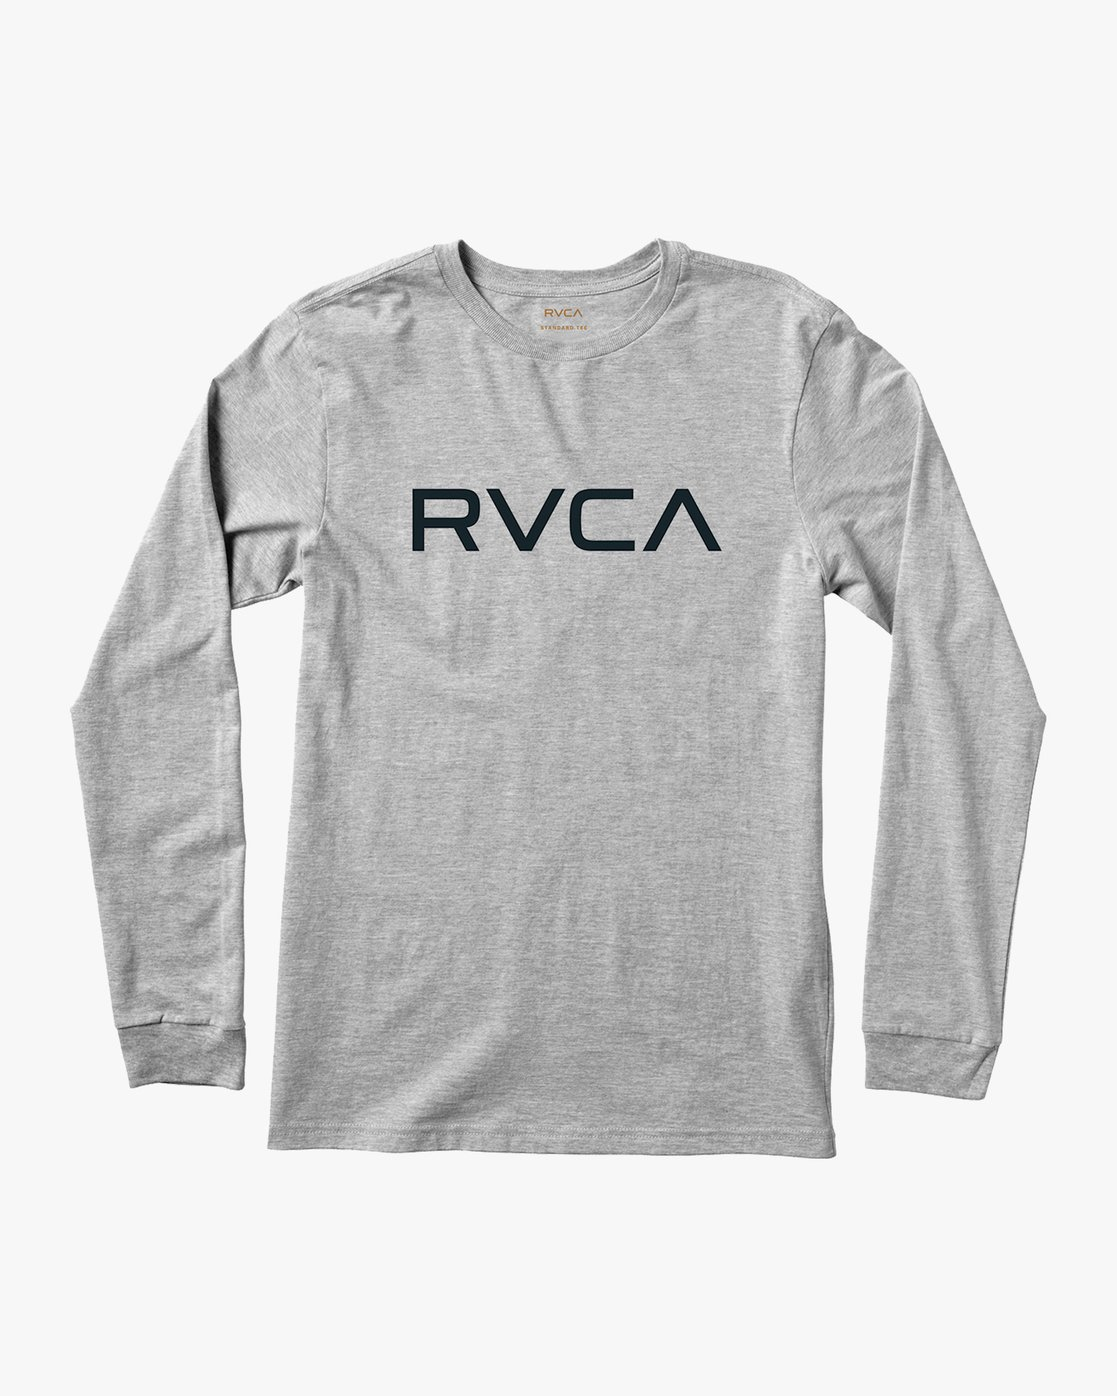 0 Big RVCA Long Sleeve T-Shirt Grey M451TRBI RVCA